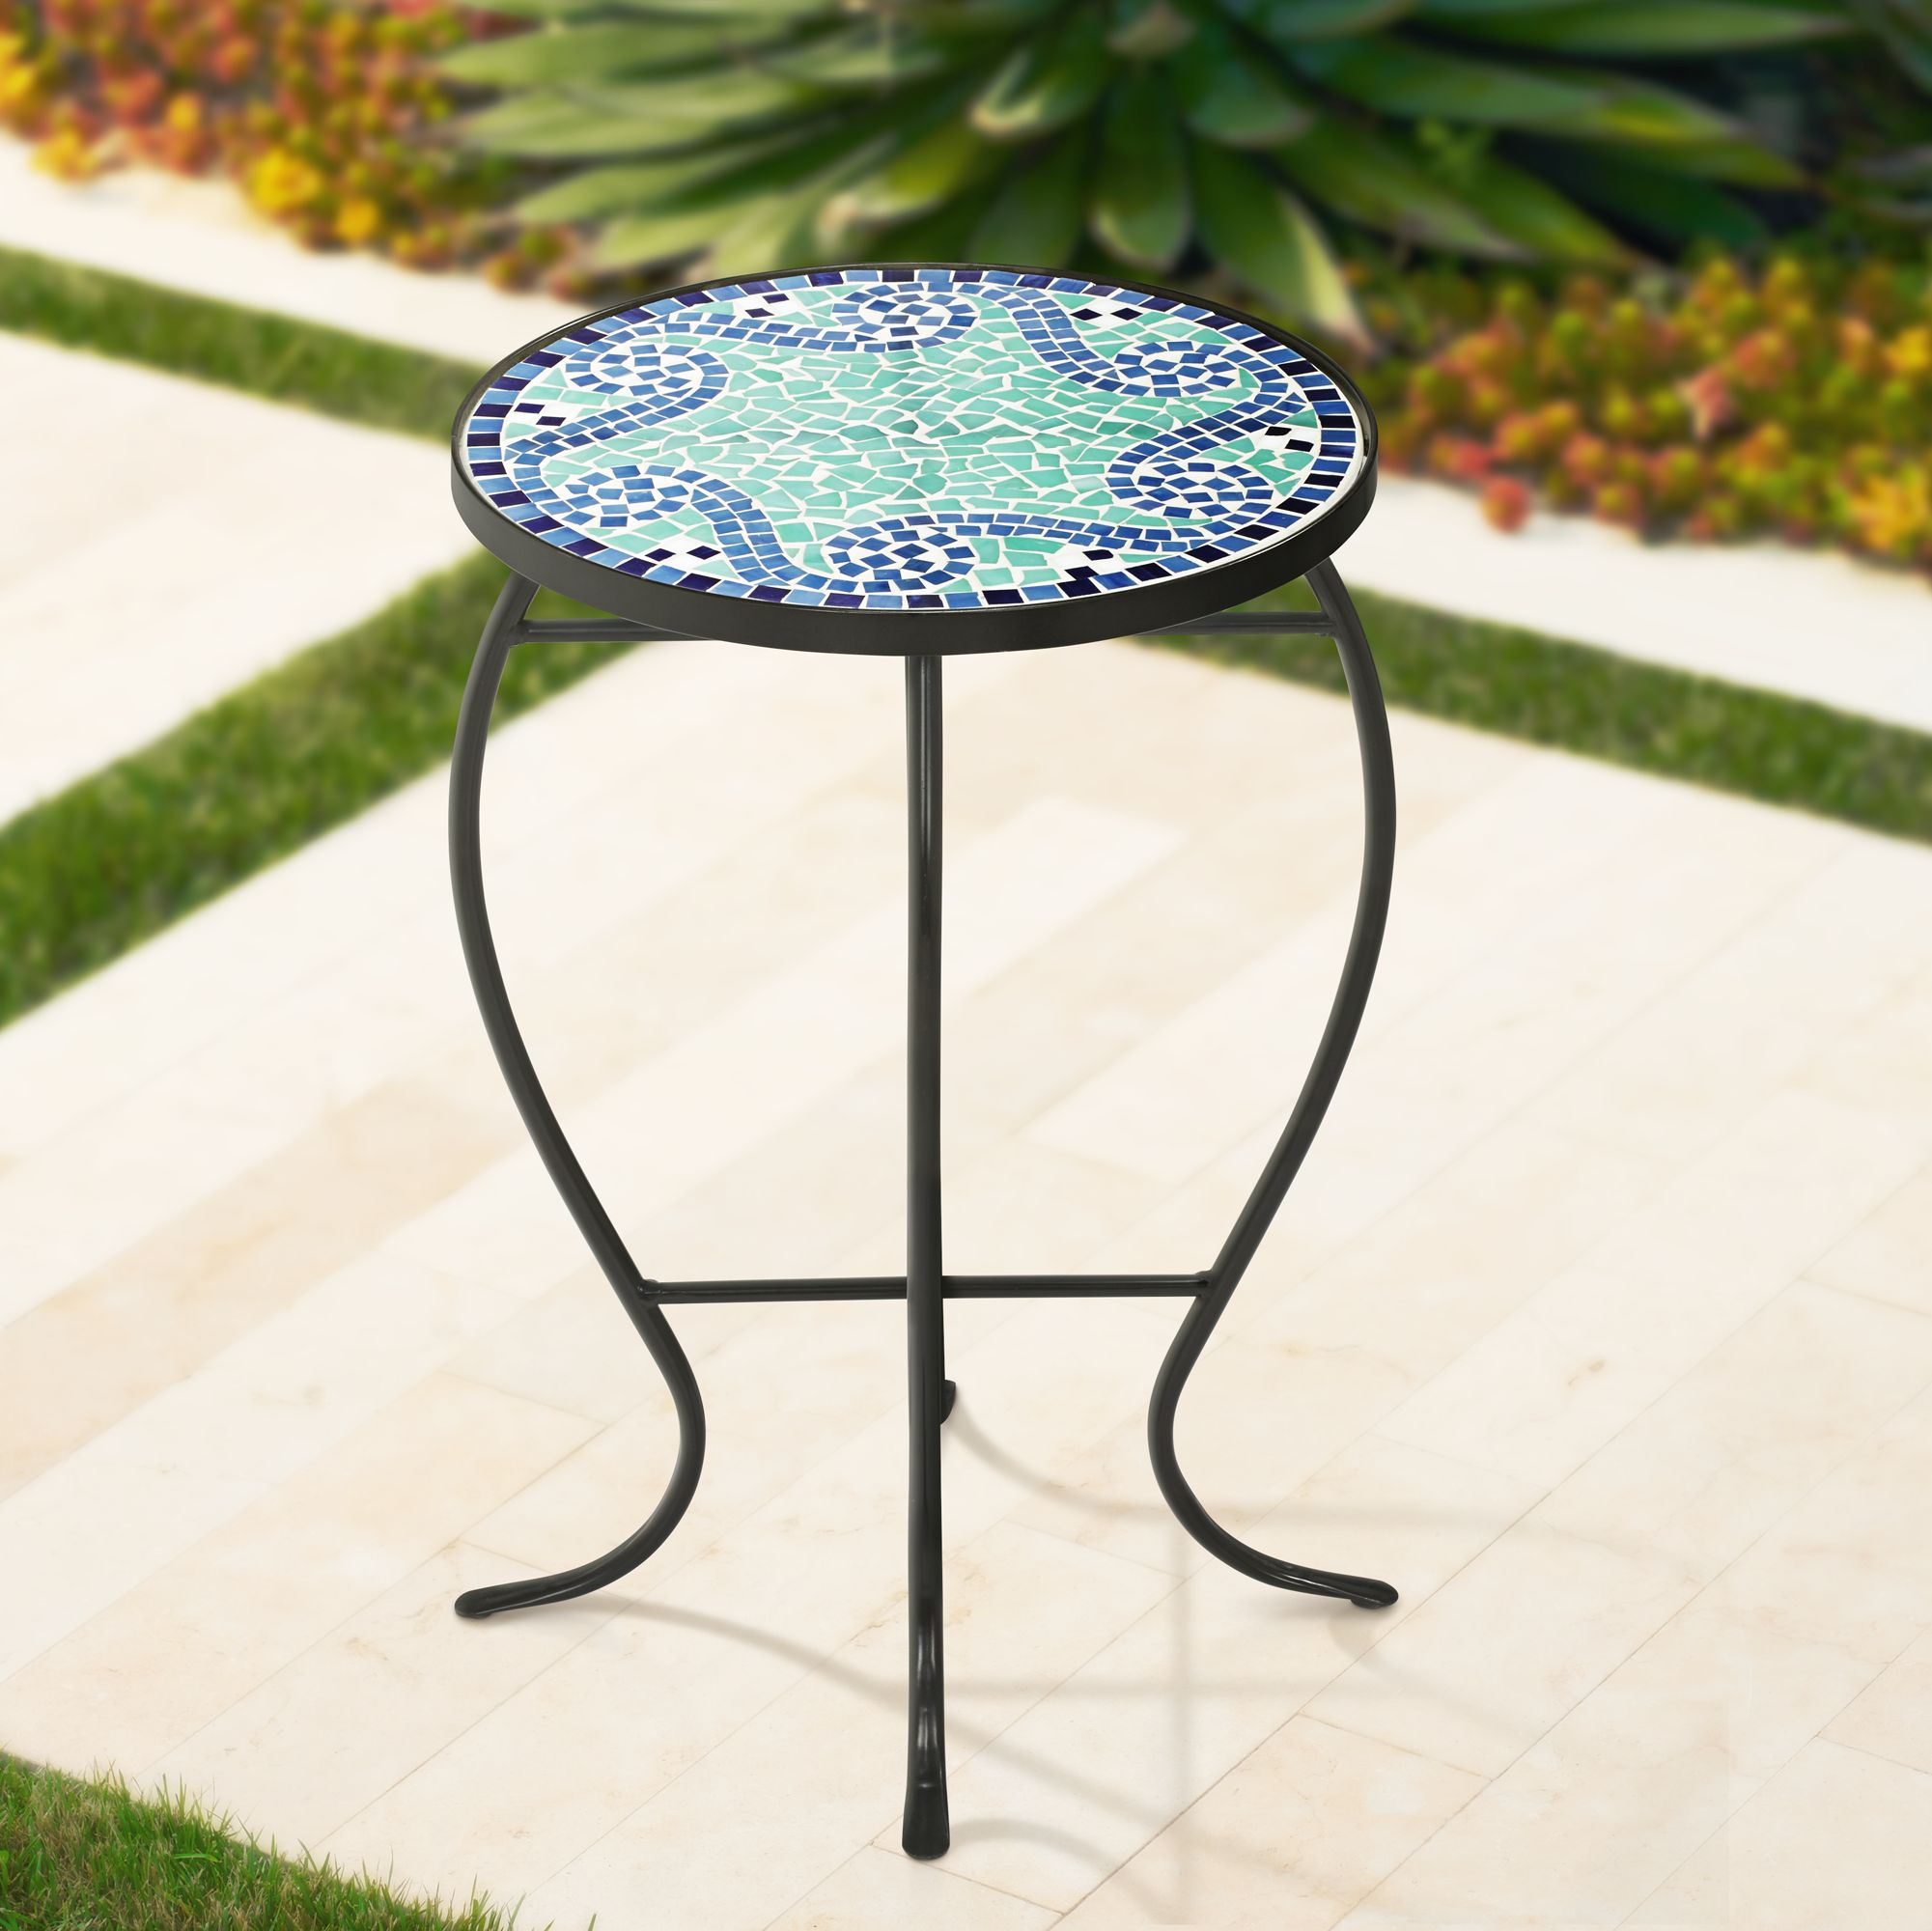 ocean wave mosaic black iron outdoor accent table - Outdoor Accent Tables